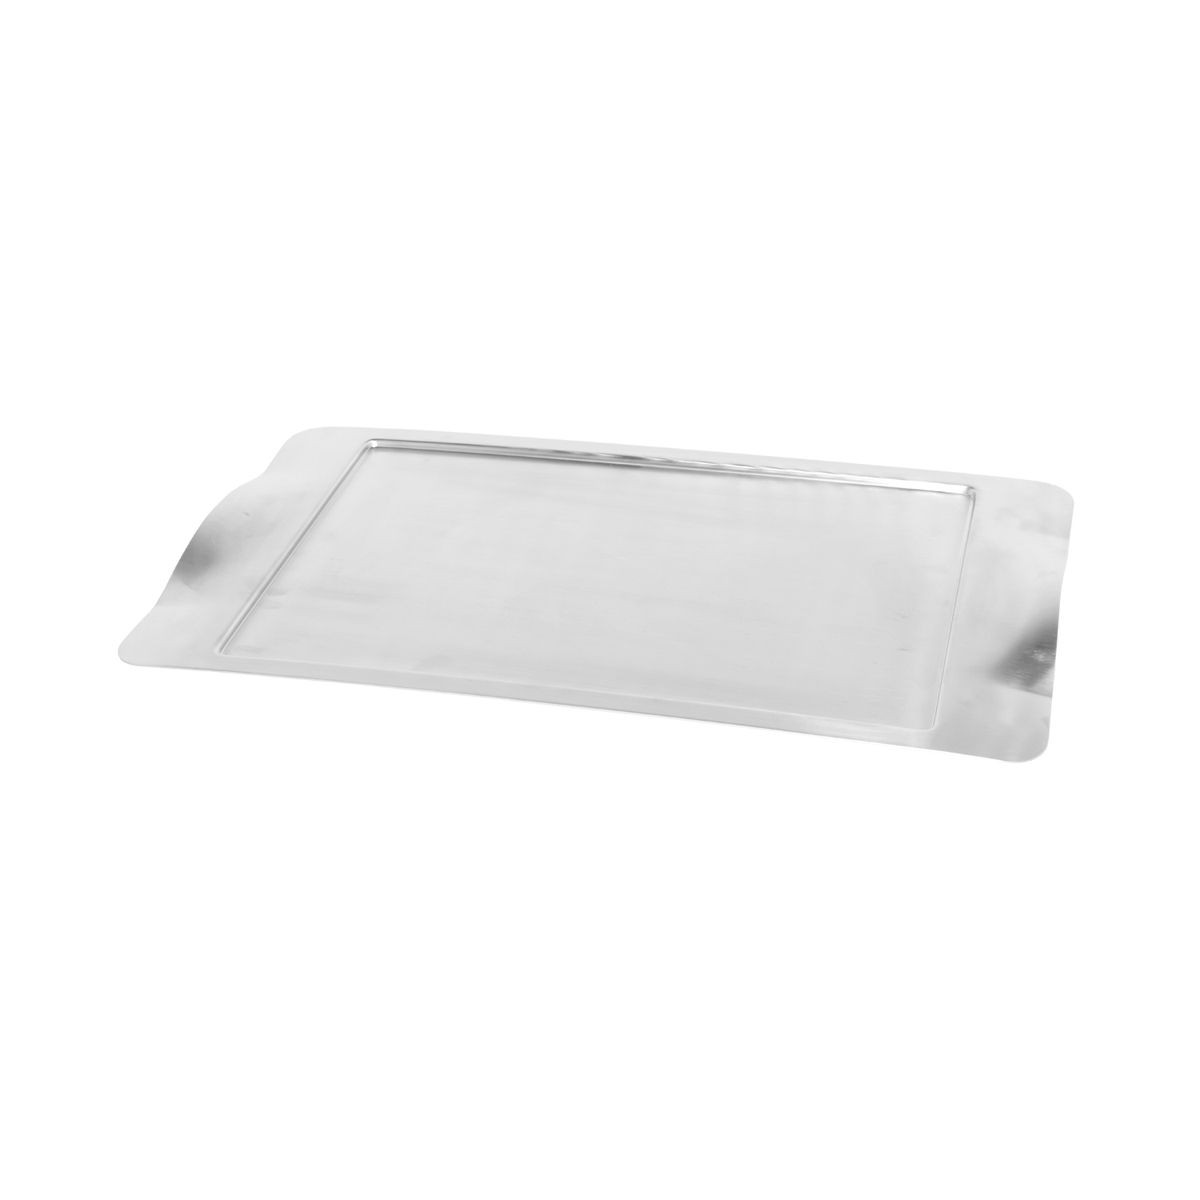 Service Ideas SB-42 SteelForme Brushed Stainless Steel Rectangular Serving Tray, 20&x 11&